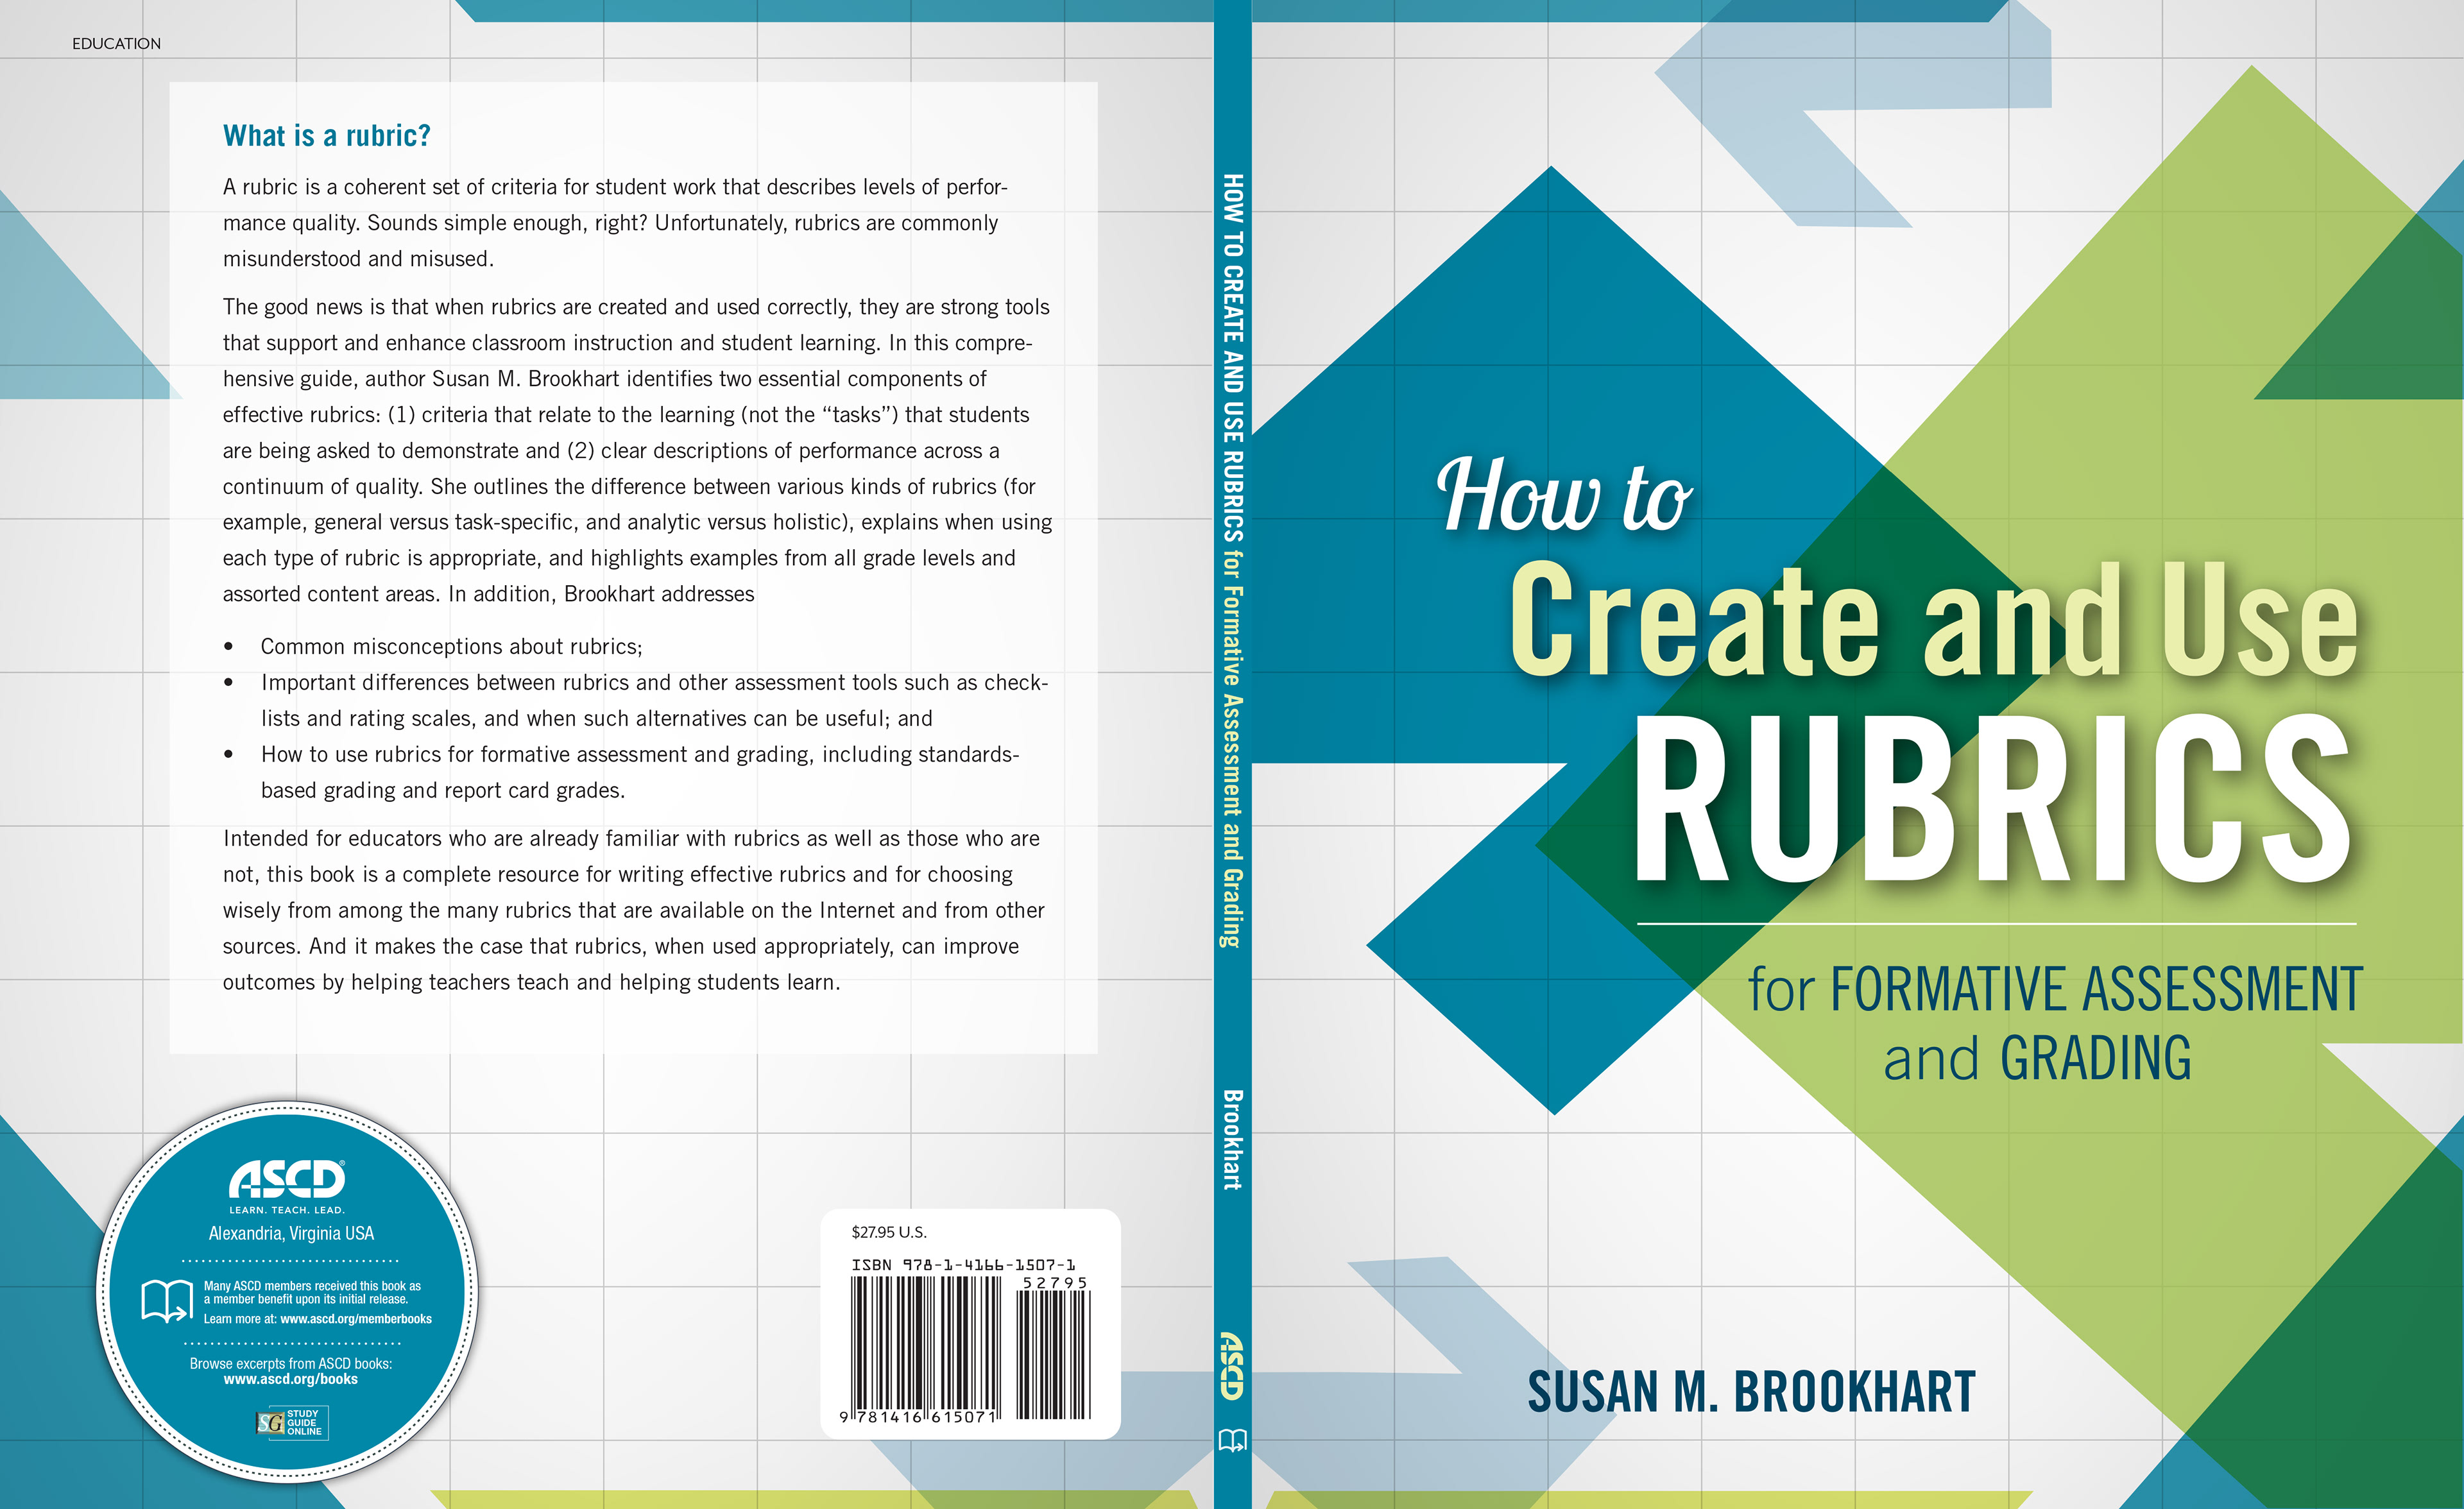 Rubric For Book Cover Design : Louise bova design how to create and use rubrics book